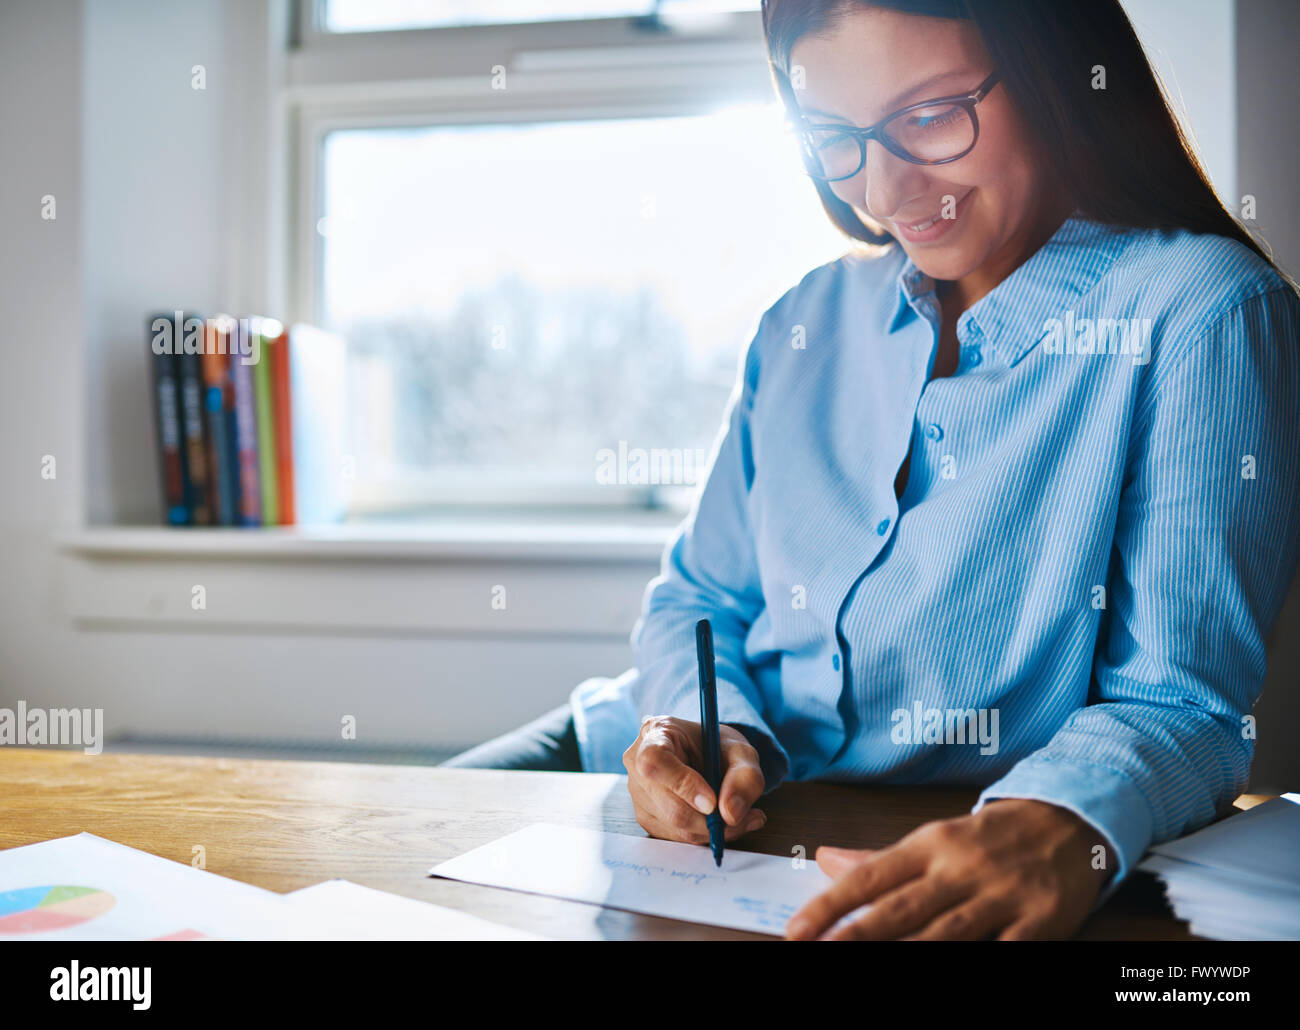 Selective focus close up on happy entrepreneur female wearing glasses and blue shirt at desk writing on form next - Stock Image